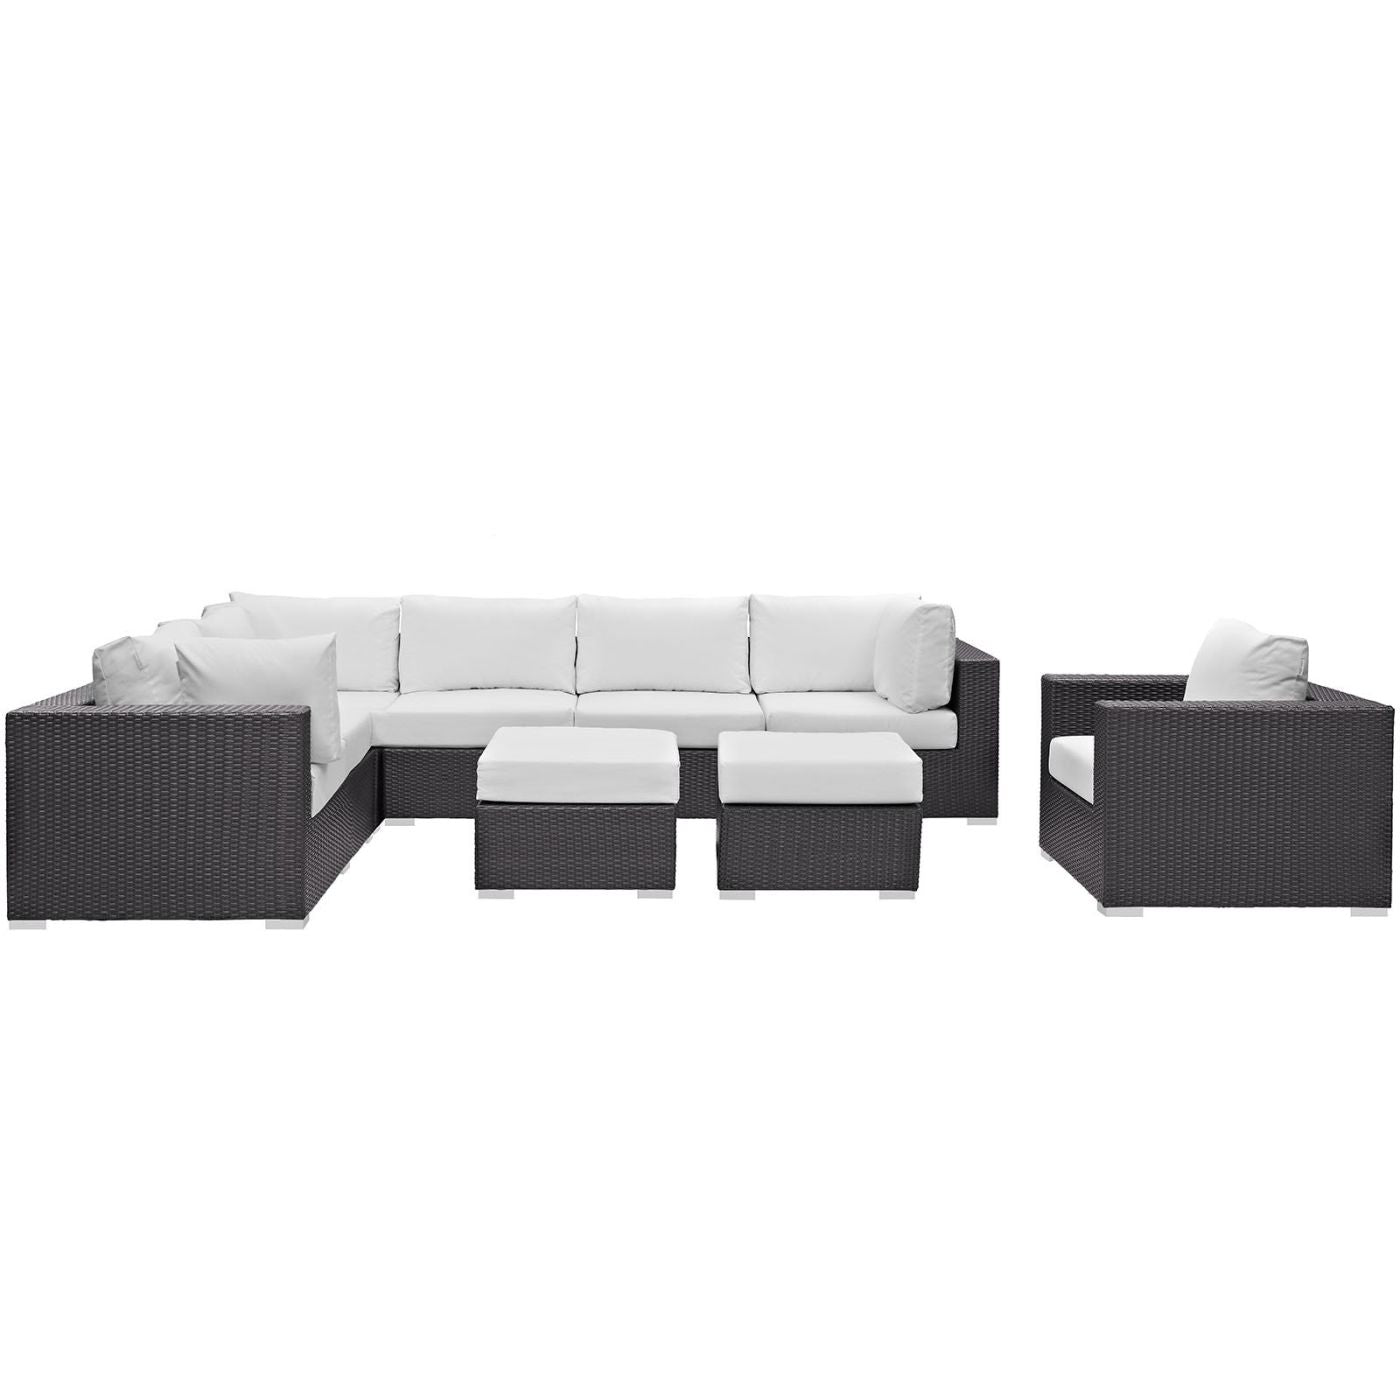 Convene 9 Piece Outdoor Patio Sectional Set Espresso White ...